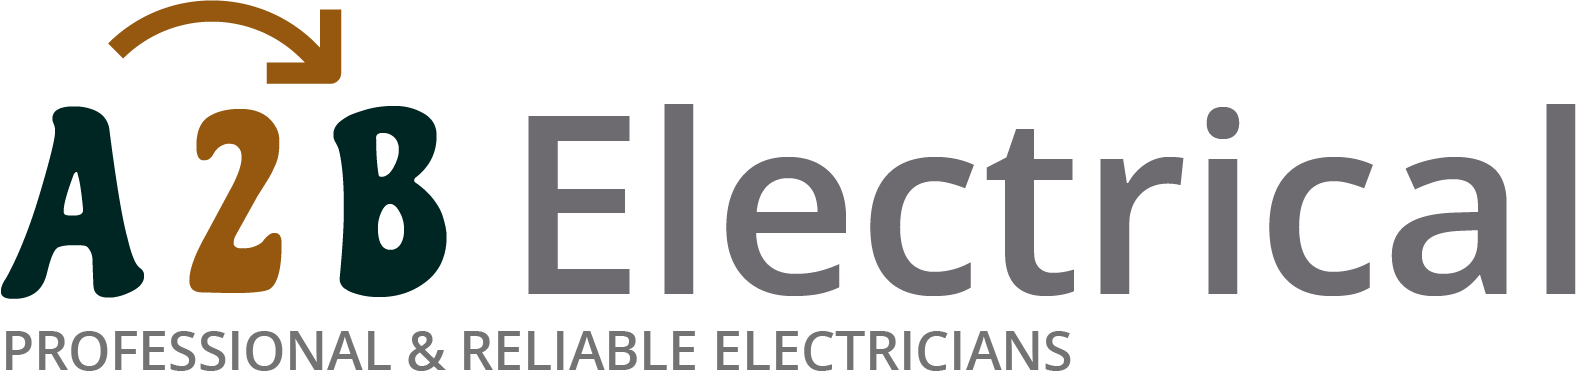 If you have electrical wiring problems in Frinton, we can provide an electrician to have a look for you.